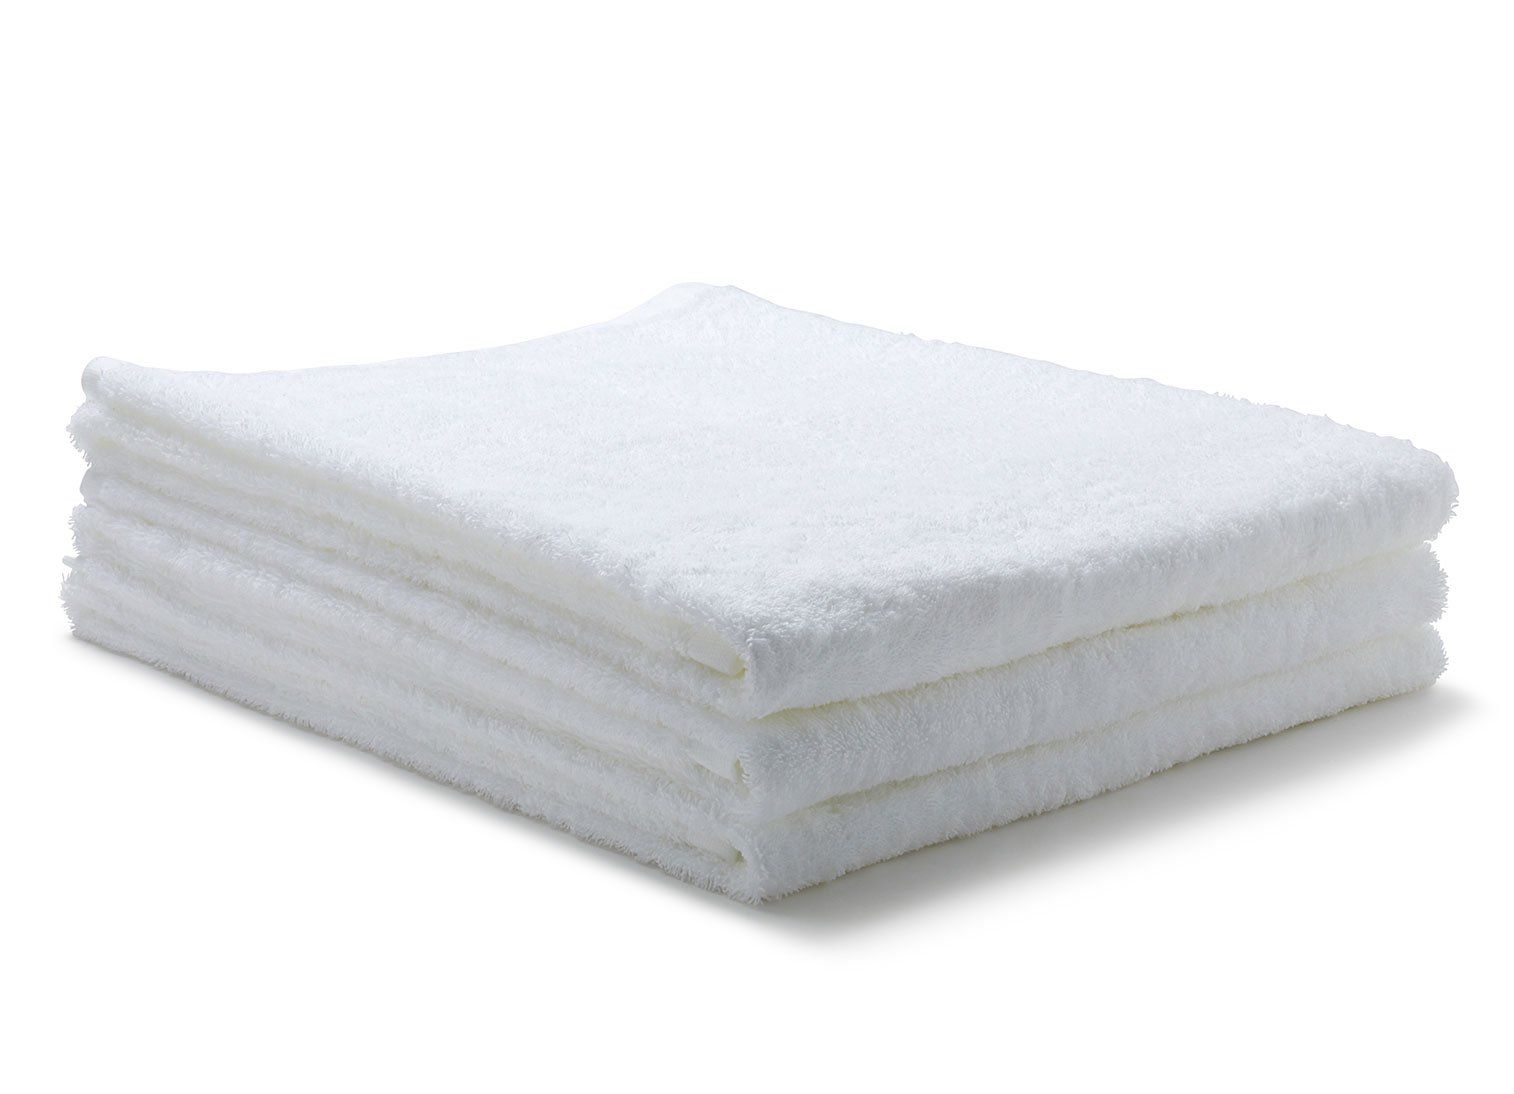 Bulk White Bath Towels Product Details 100 High Quality Egyptian Cotton 500 Gsm Size 27 X54 Wei White Towels Bath Towels White Bath Towels